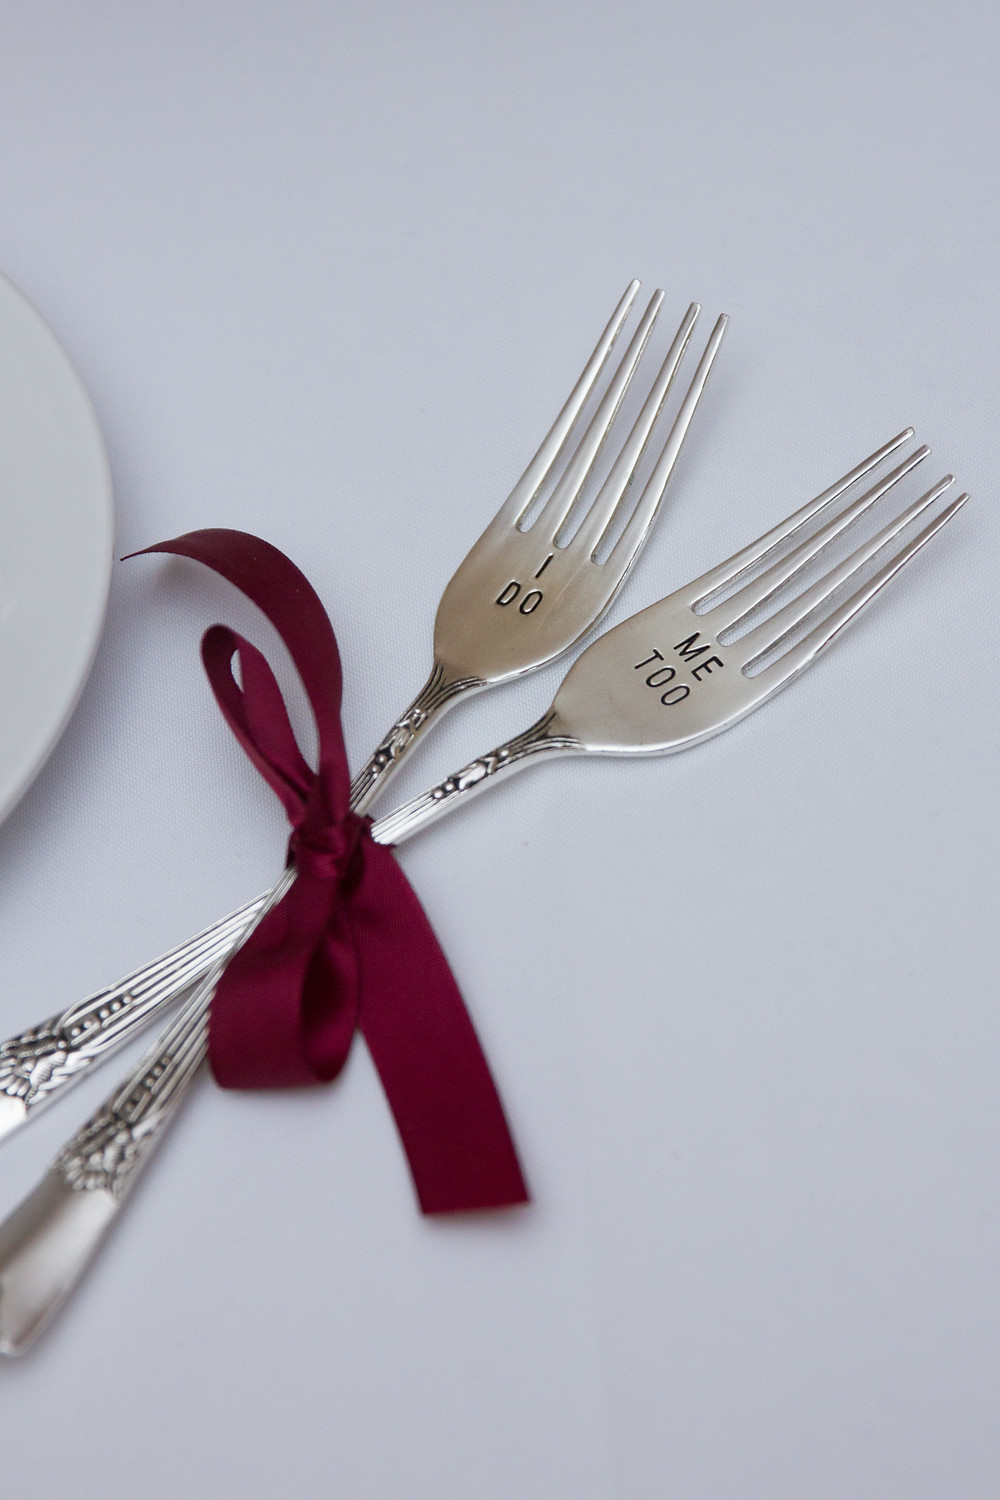 wedding, reception, cake table, wedding day, wedding cake, I do, me too, personalized silverware, dessert forks, columbia, mo, blue diamond events photography, fall colors, Kimball Ballroom, Stephens College, fall decor, blue diamond events coordinating, day of coordinating